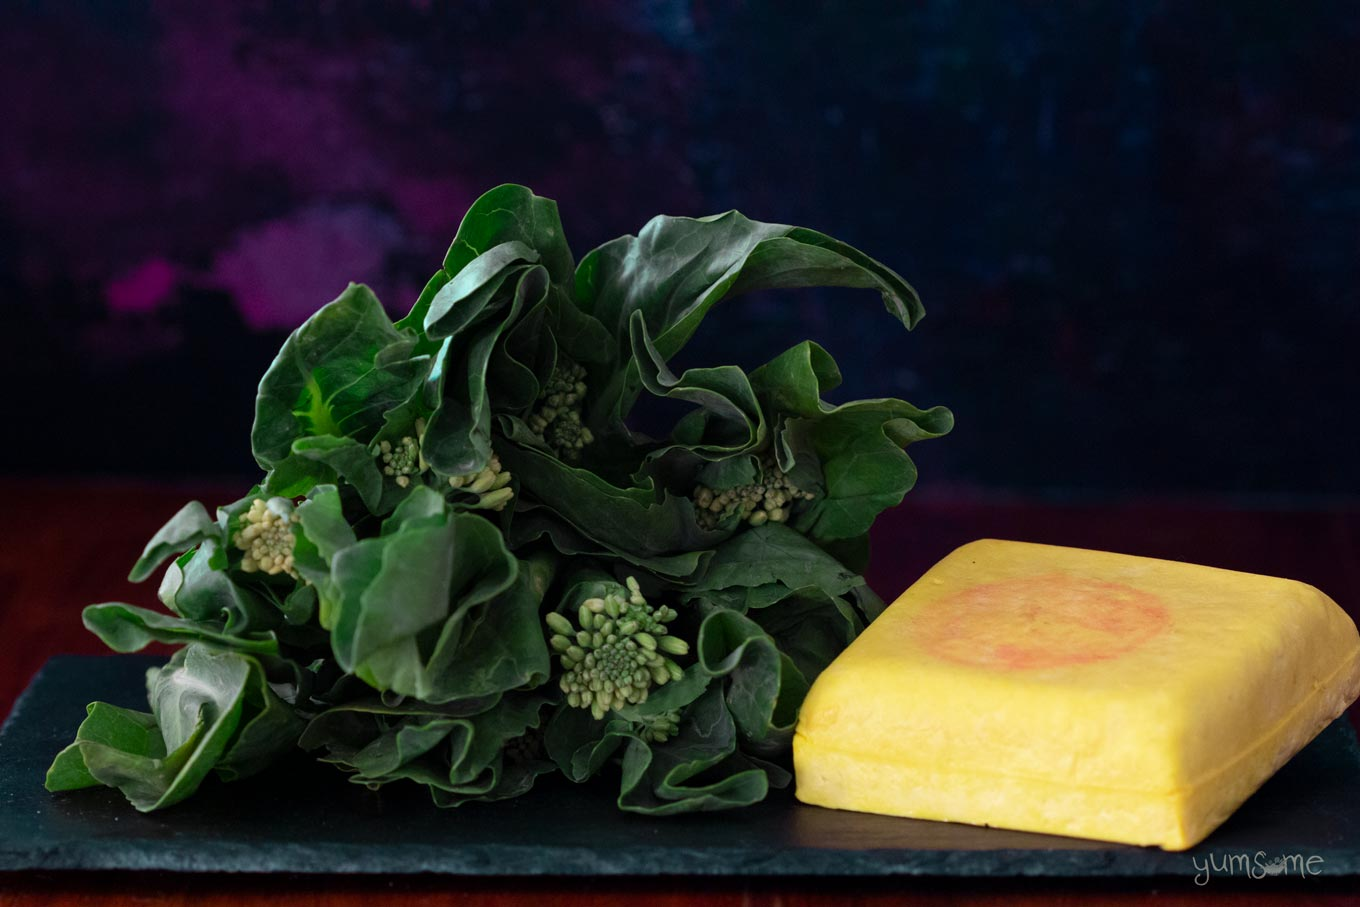 Chinese broccoli and a block of yellow tofu on a dark background.